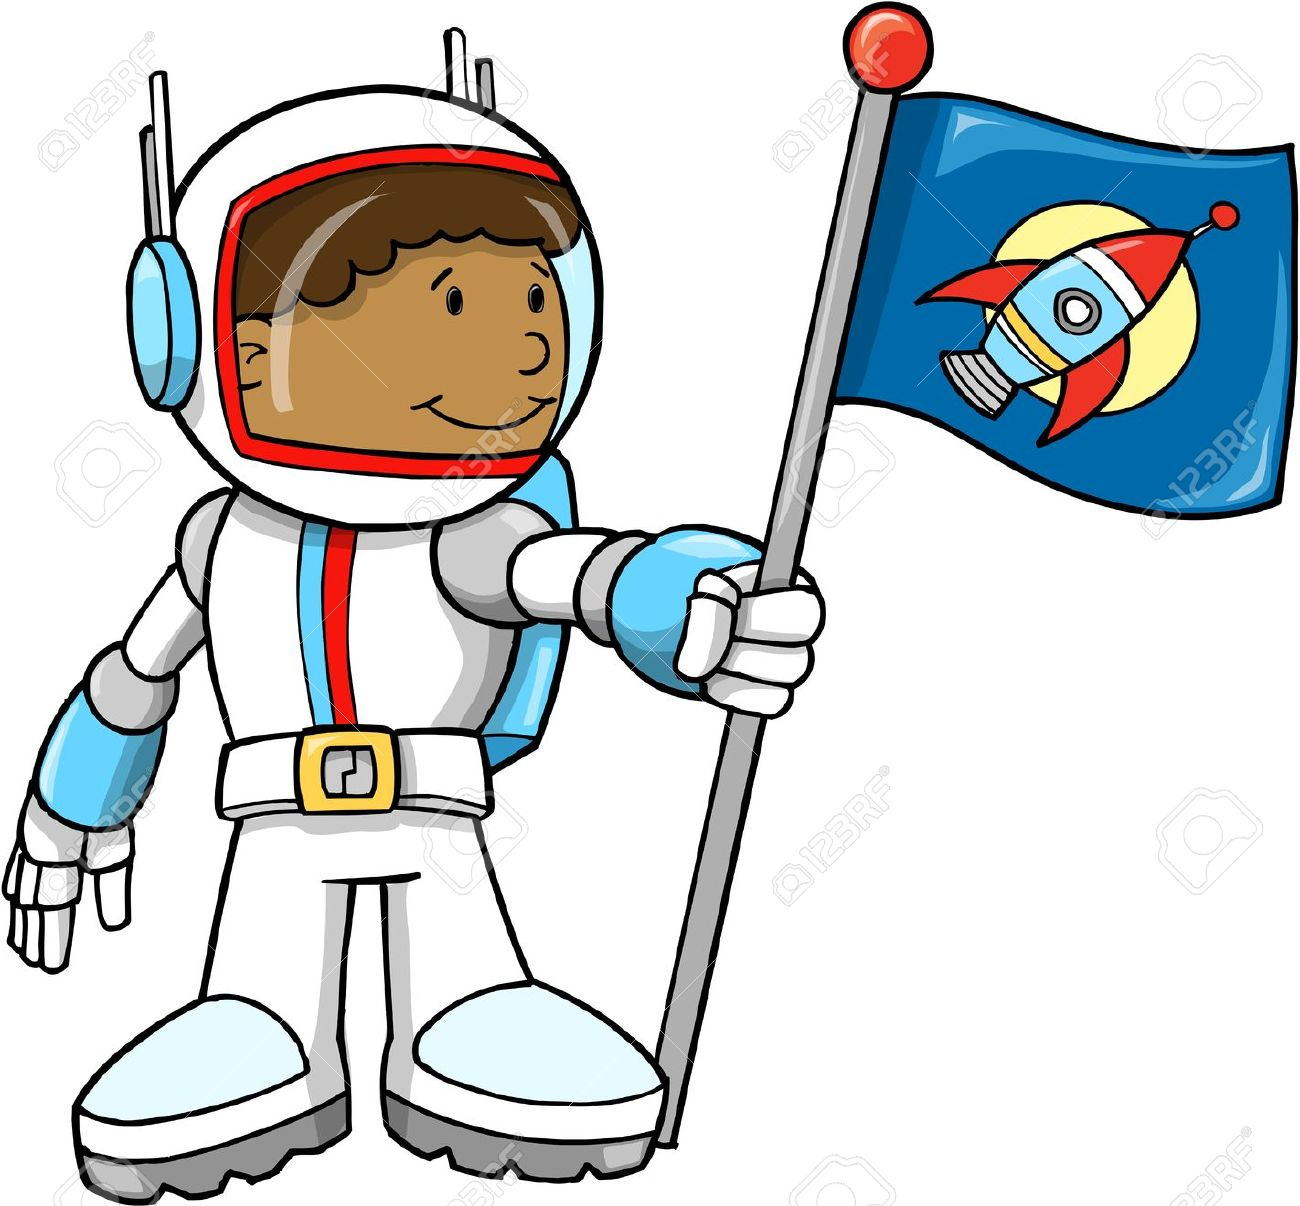 Astronaut clipart - Clipground